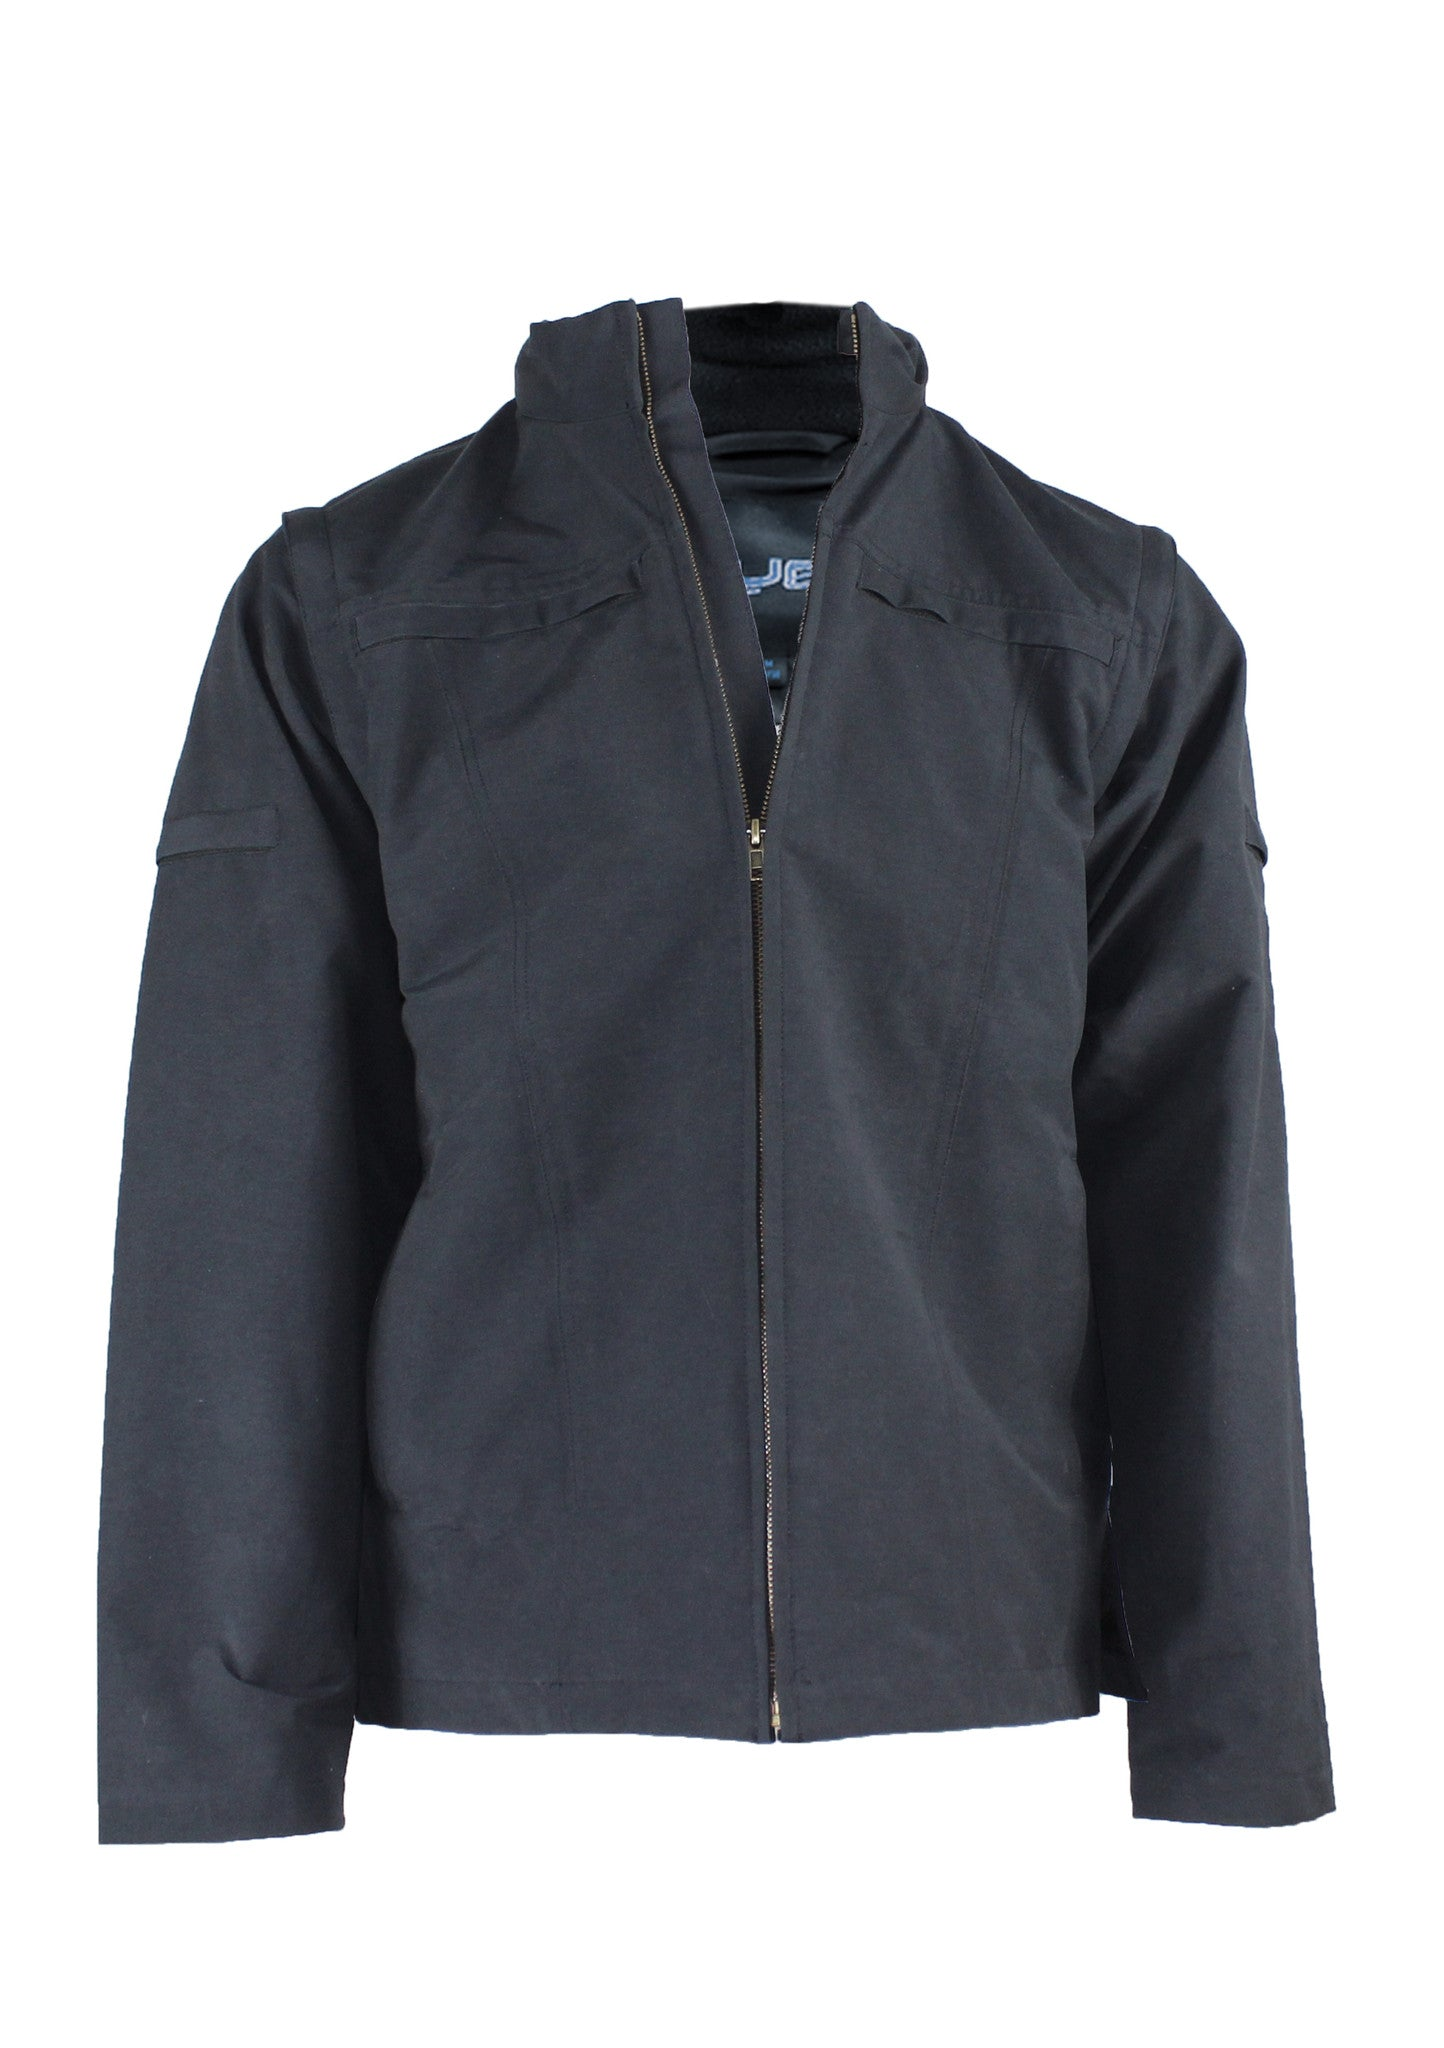 Ayegear jacket with 22 pockets technical outdoor jacket for Travel shirts with zipper pockets